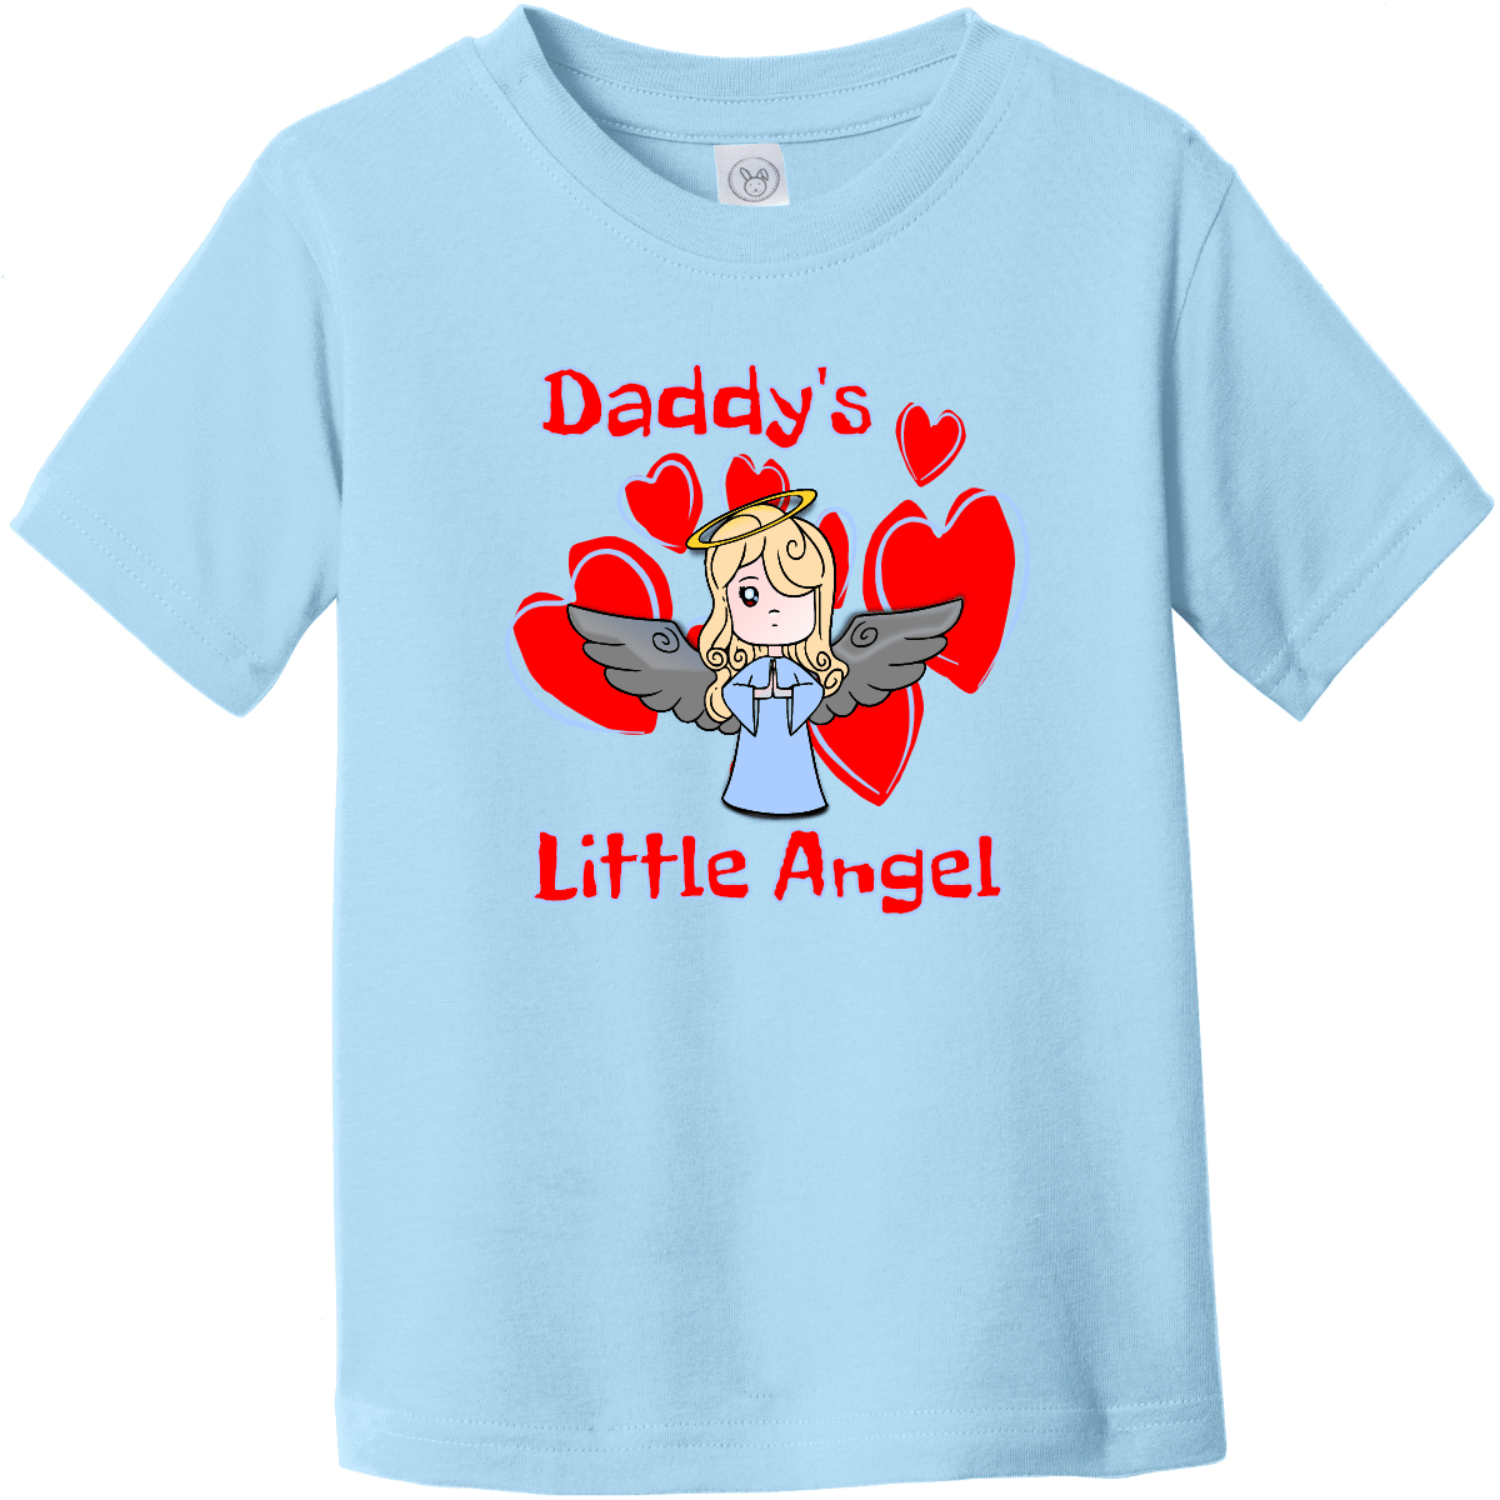 Daddy's Little Angel Toddler T-Shirt Light Blue Rabbit Skins Toddler Fine Jersey Tee RS3321